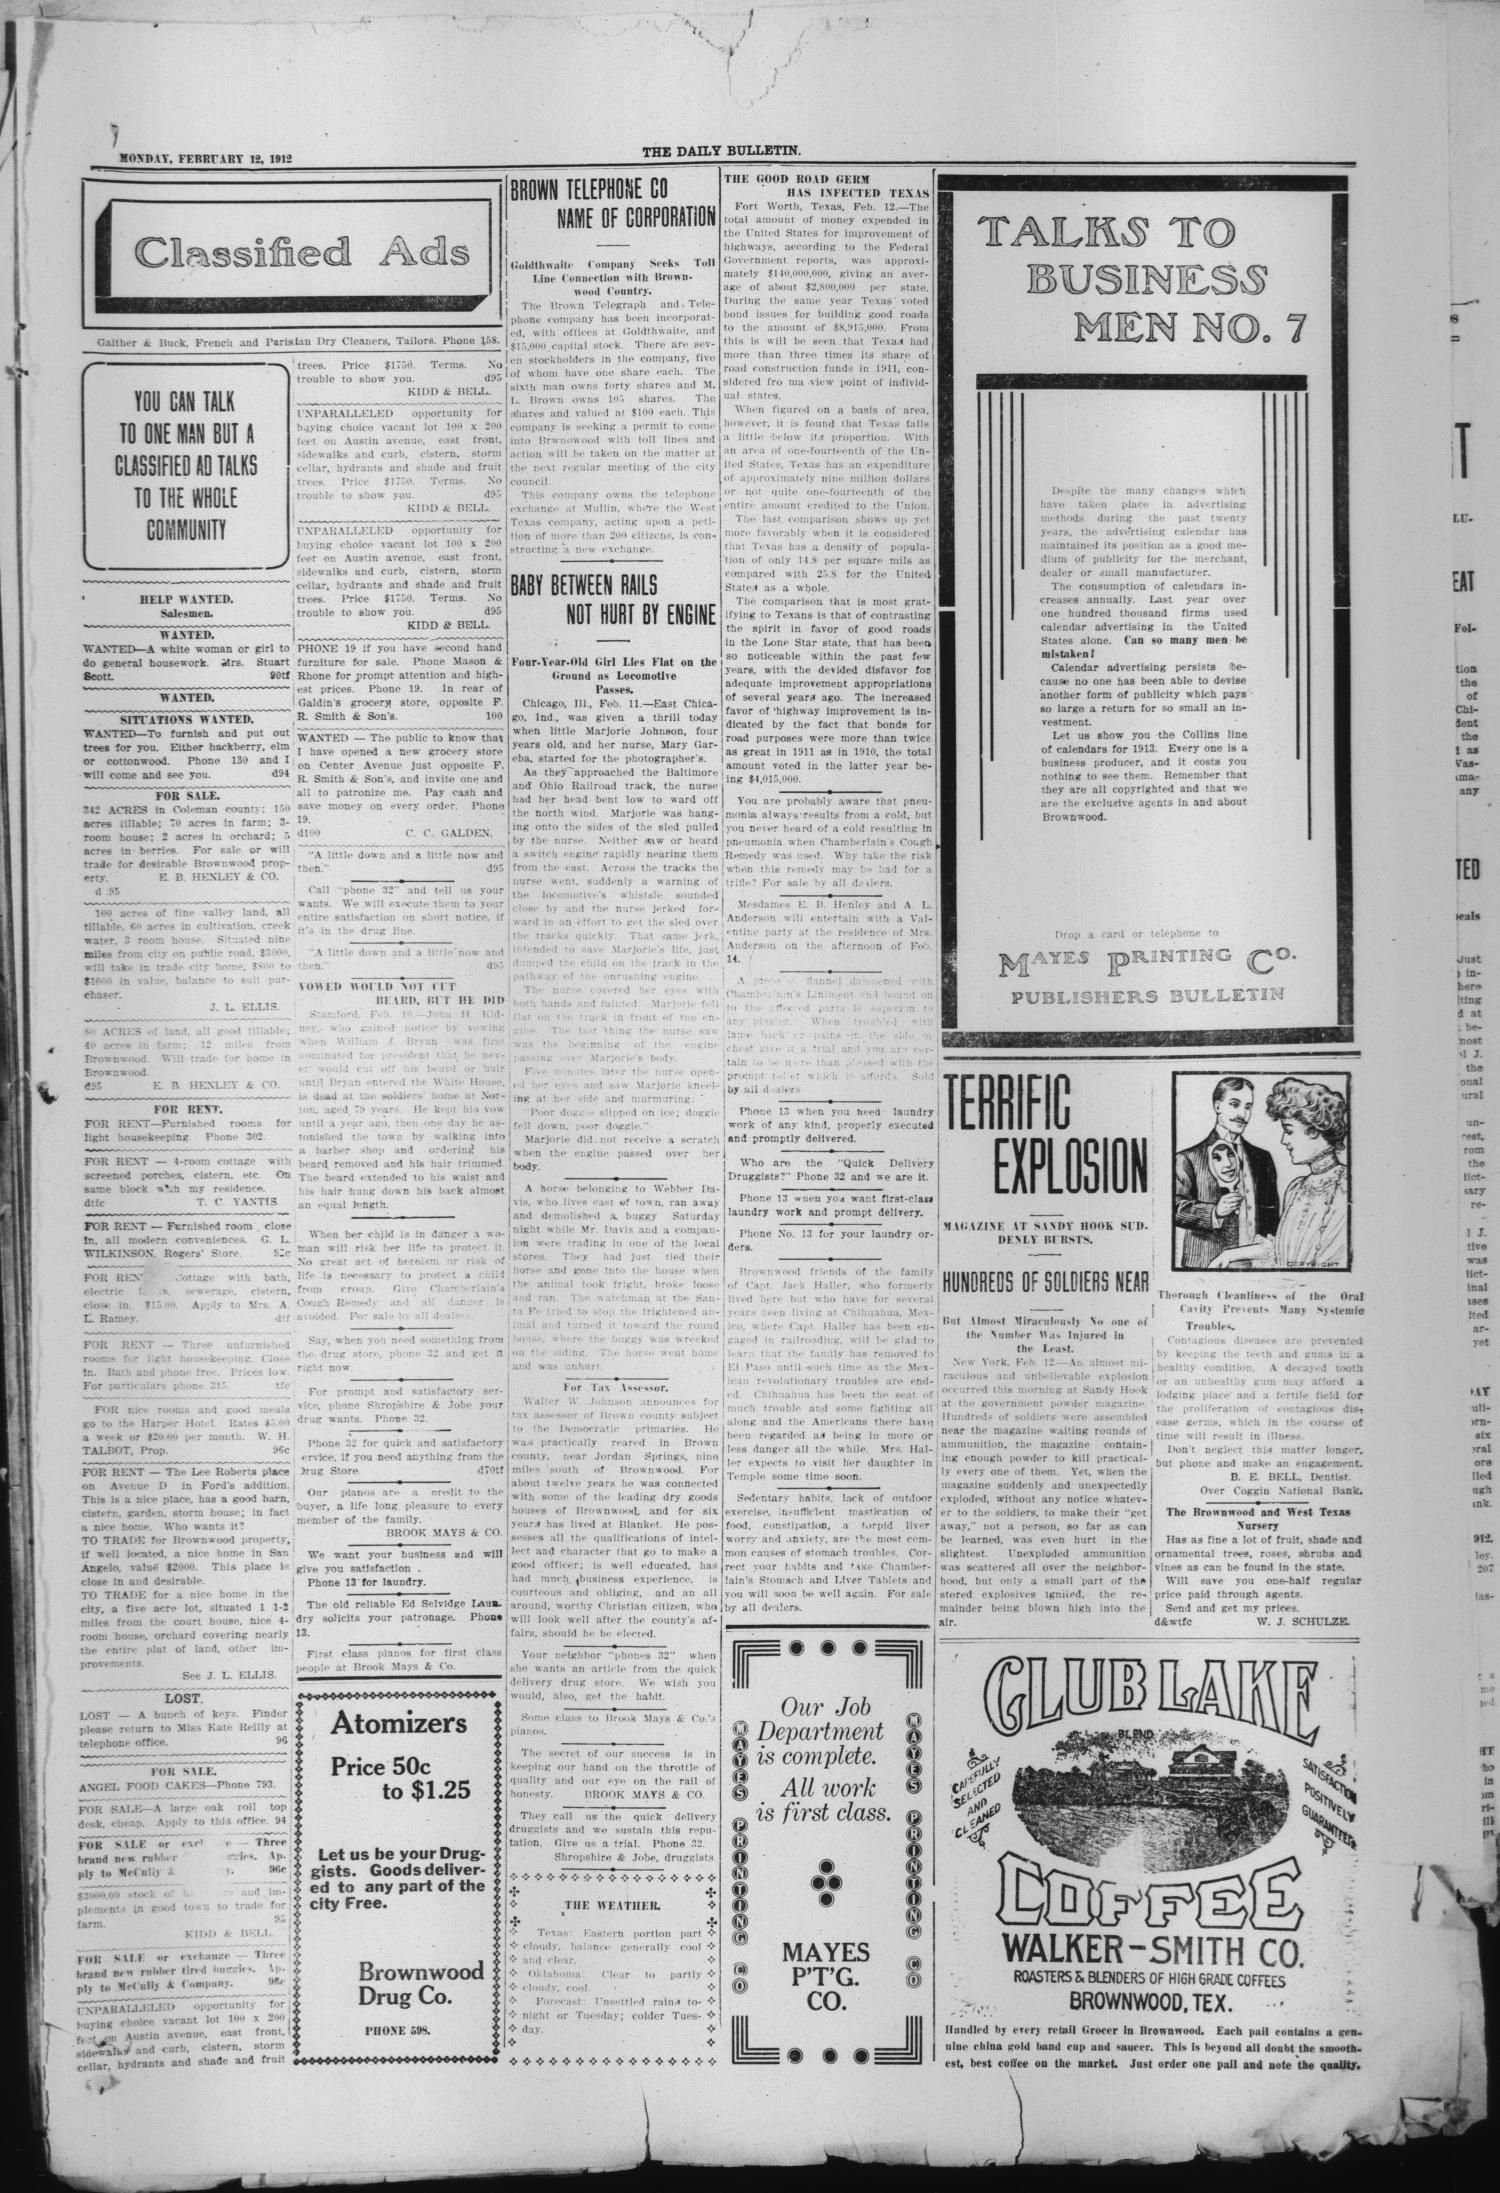 Daily Bulletin. (Brownwood, Tex.), Vol. 12, No. 95, Ed. 1 Monday, February 12, 1912                                                                                                      [Sequence #]: 3 of 4